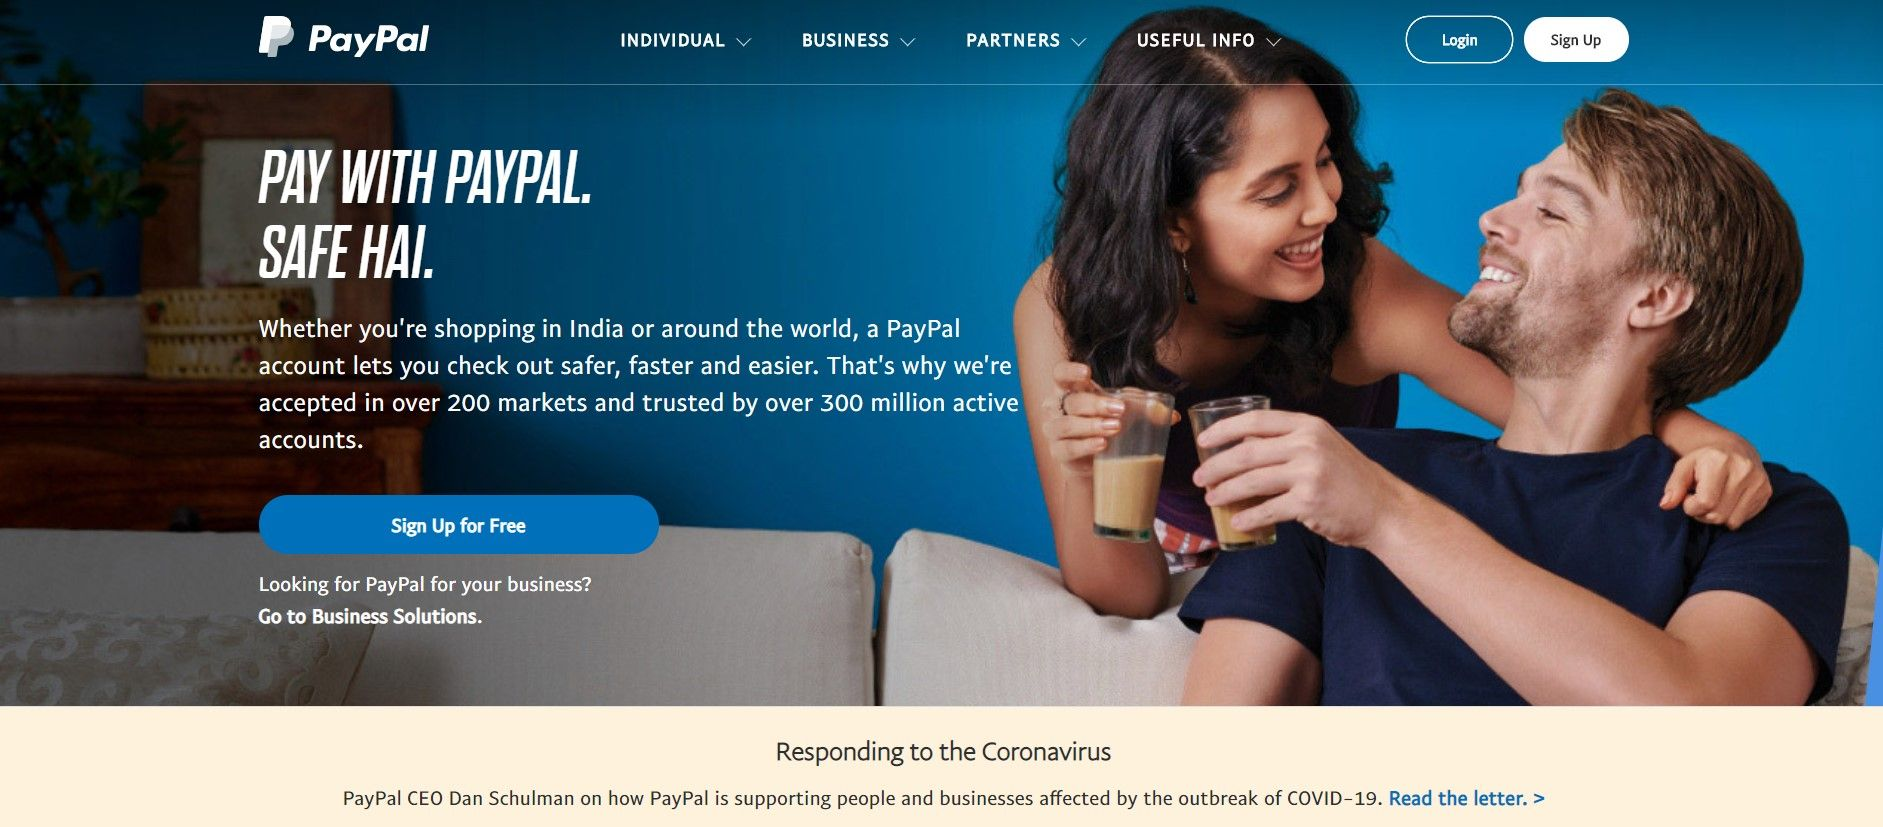 How To Use Paypal Friends And Family Paypal Money Transfer Family Easy